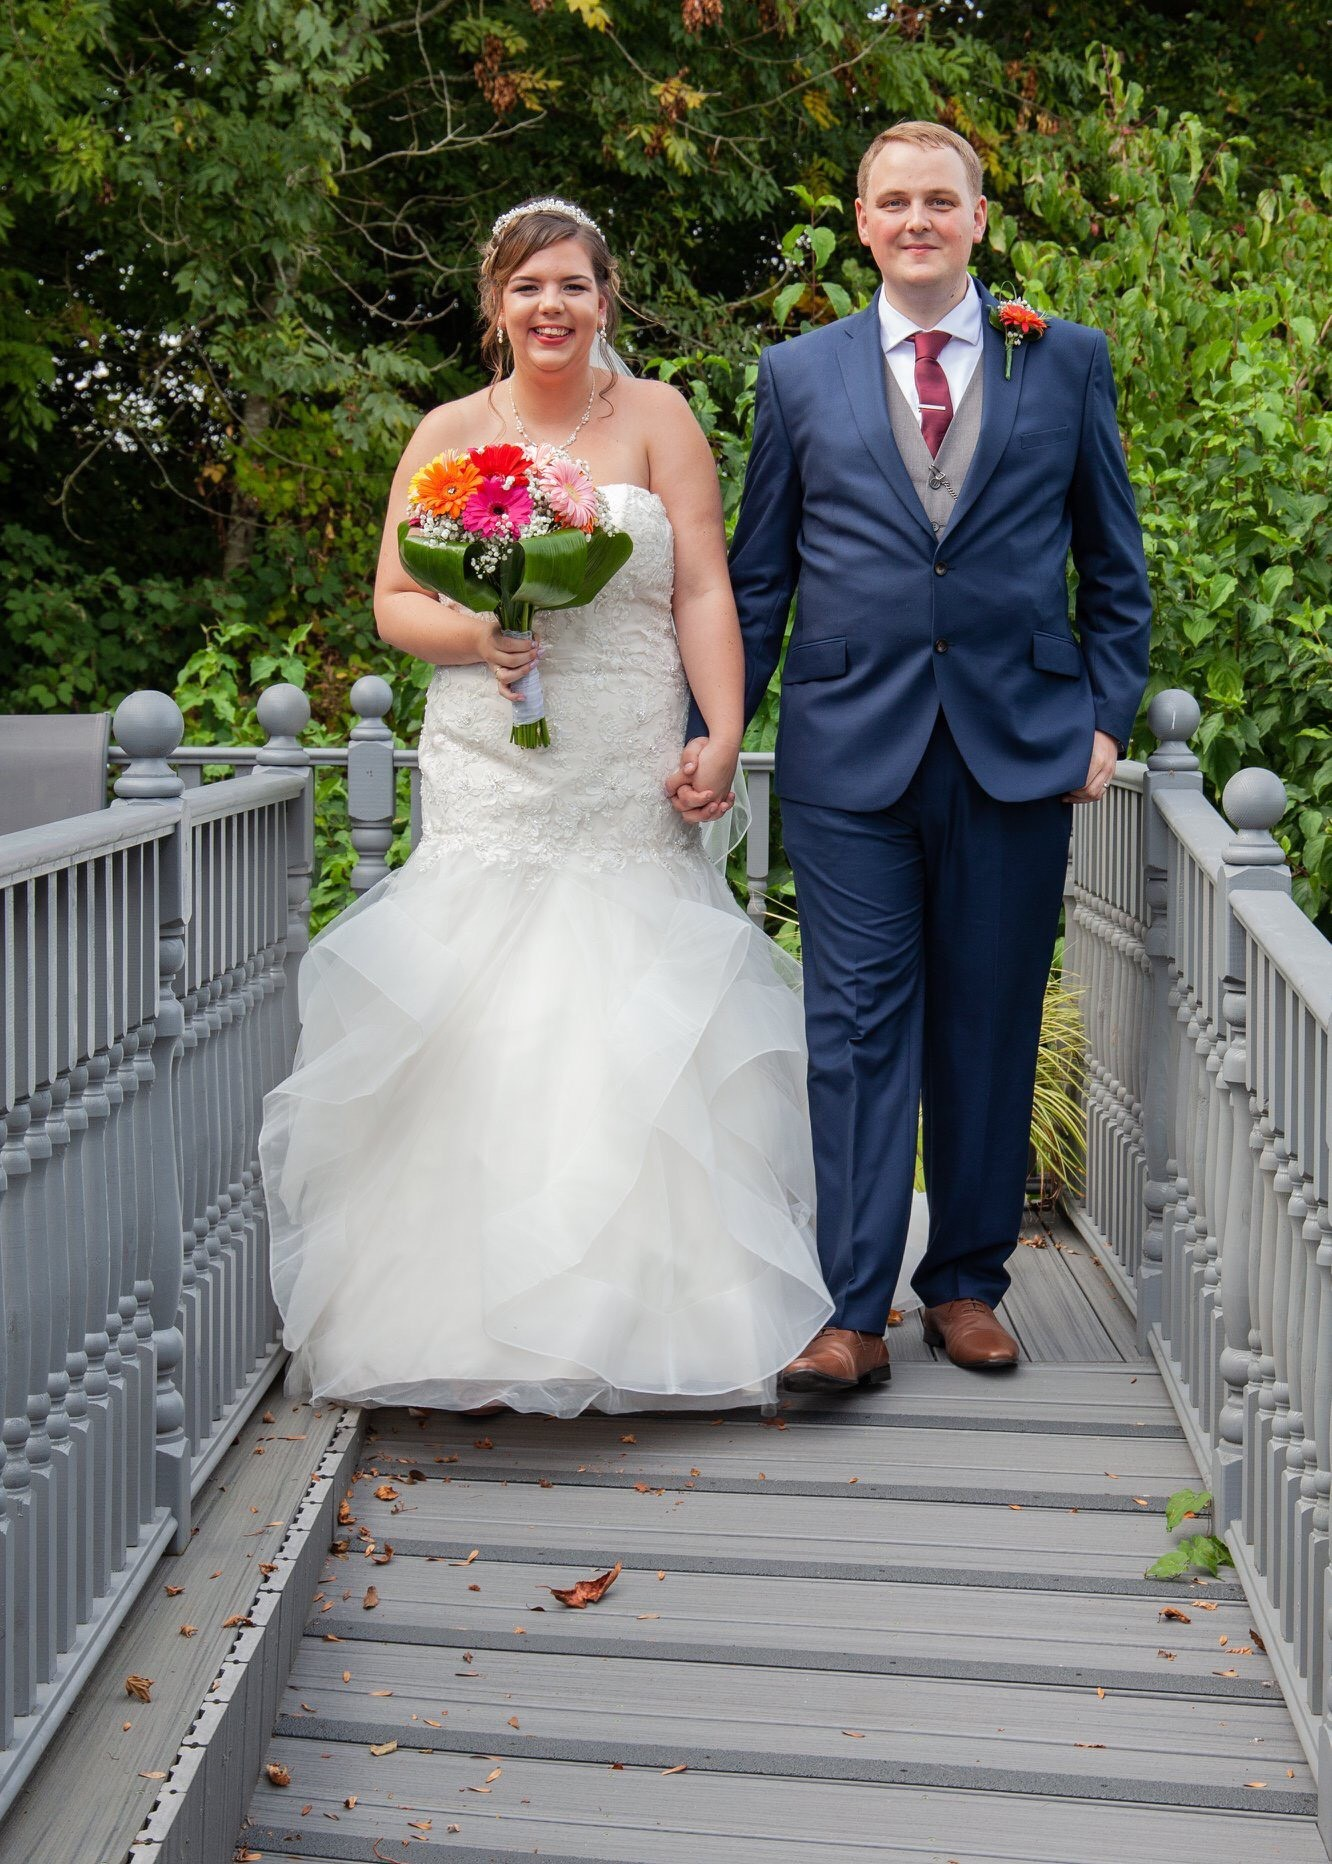 Nichola and Tom in the Hospice Garden on their Wedding Day